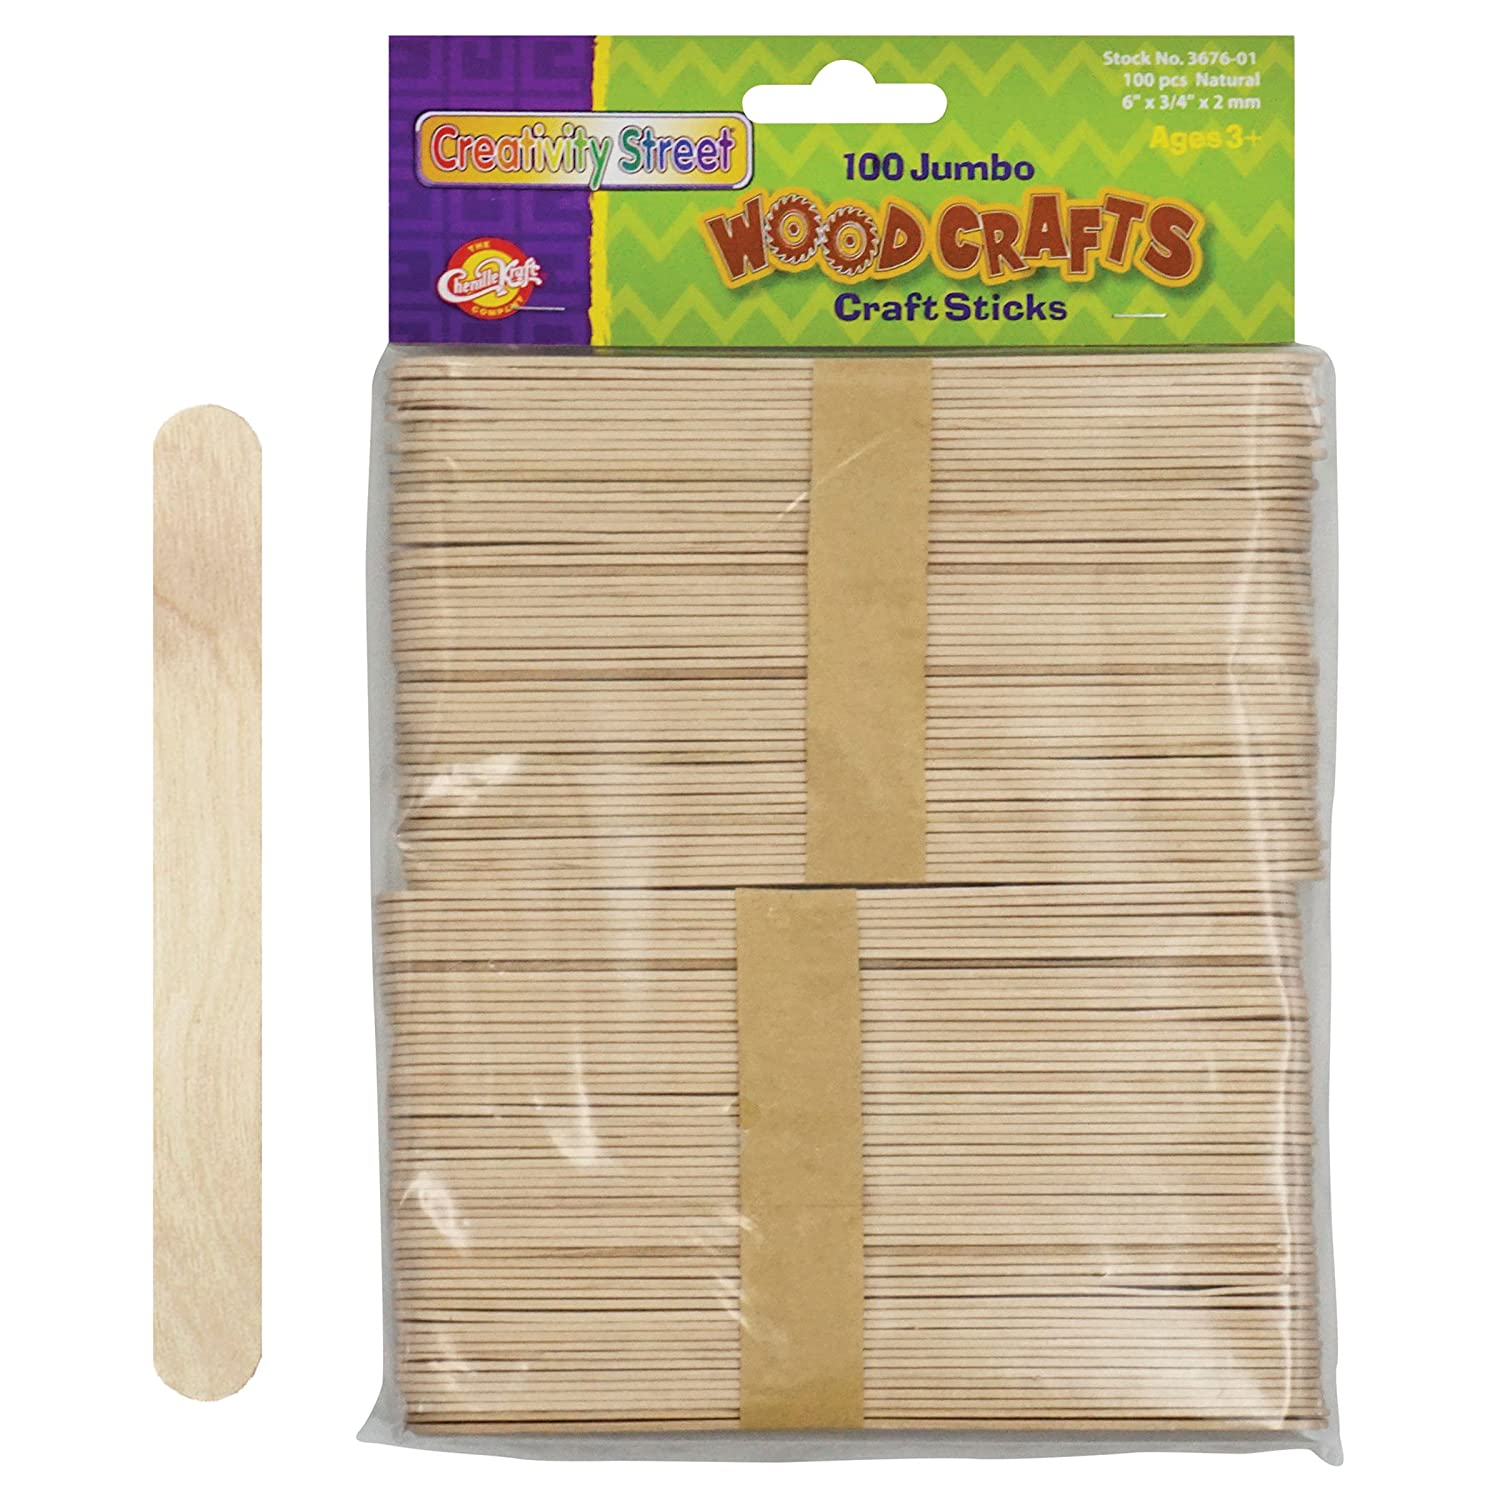 Pacon Jumbo Natural Craft Sticks 100 pieces per pack